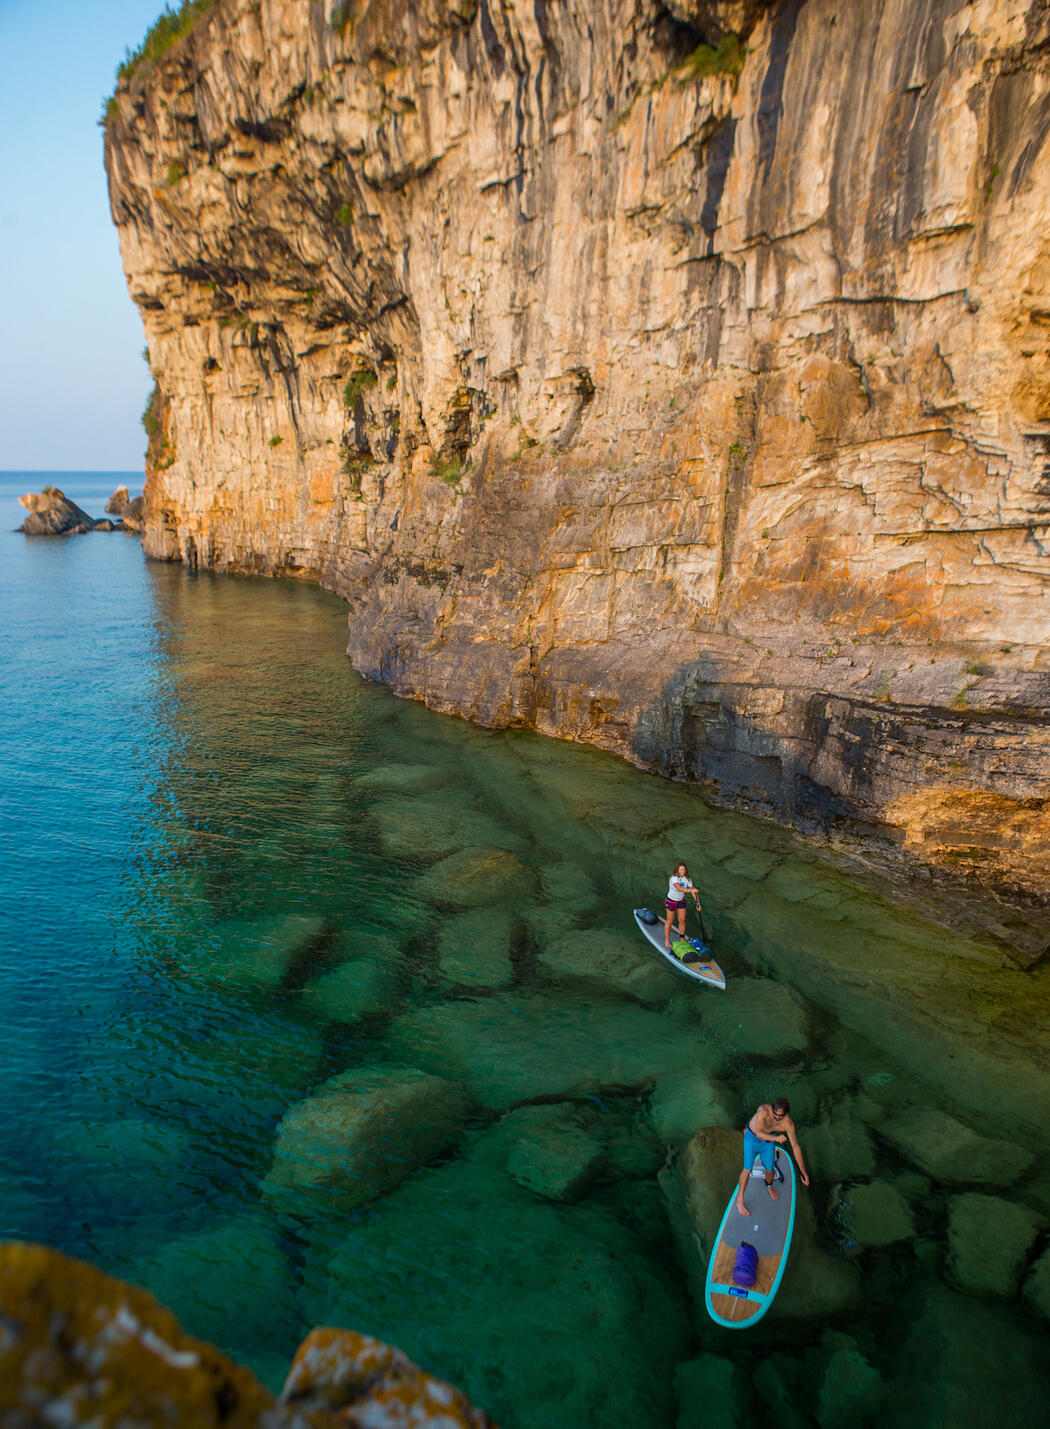 Two people stand-up paddle boarding along side tall cliffs